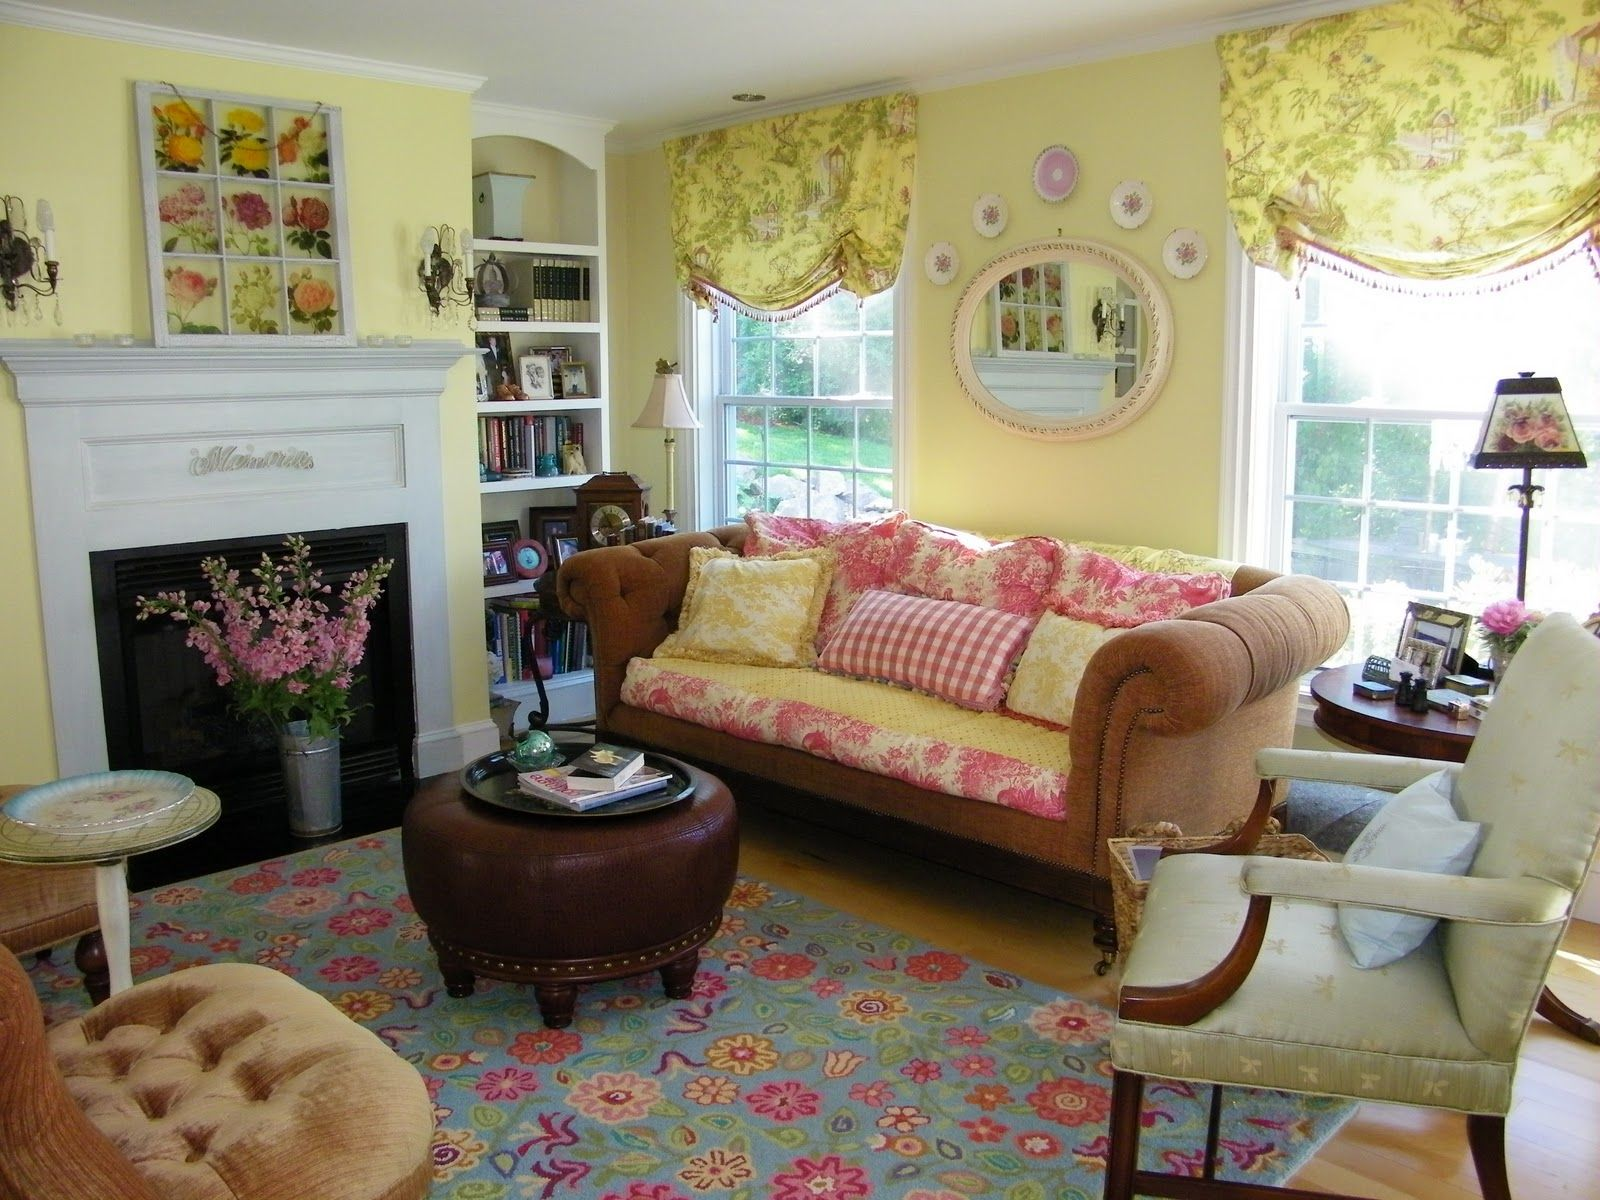 enchanting ideas sofa country livings yellow white room pin french cottage living